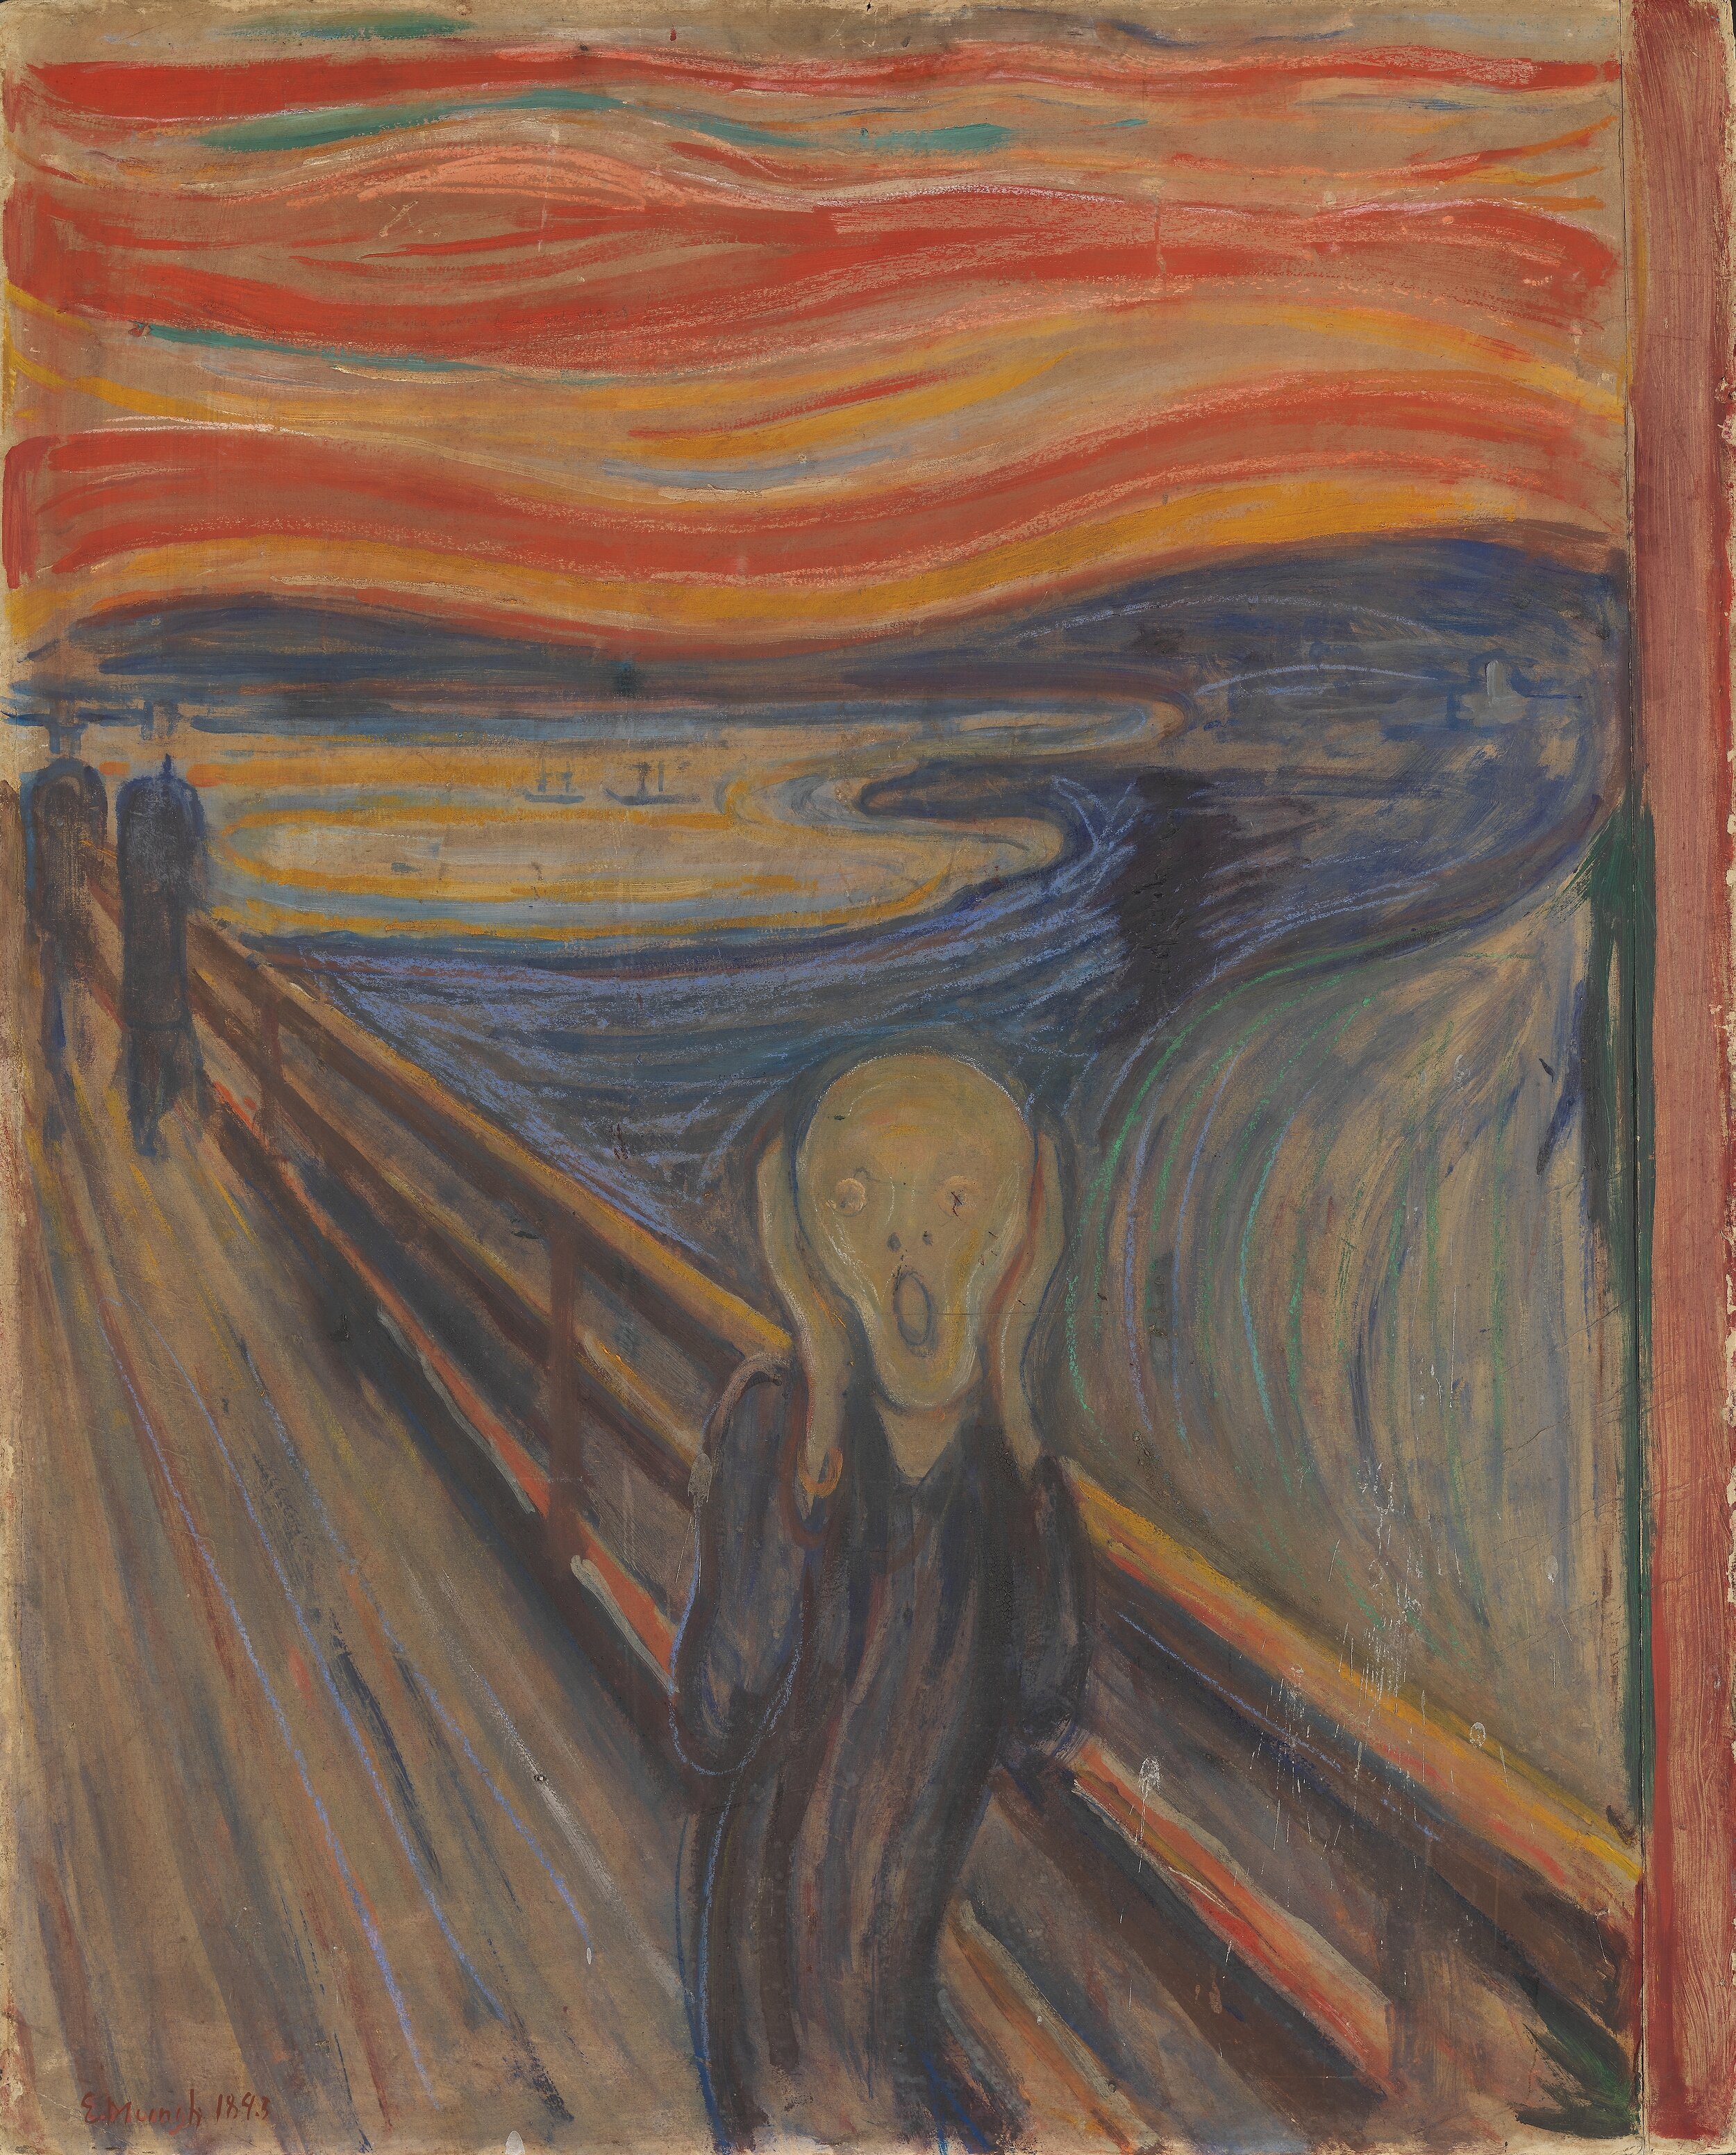 Edvard_Munch,_1893,_The_Scream,_oil,_tempera_and_pastel_on_cardboard,_91_x_73_cm,_National_Gallery_of_Norway.jpg